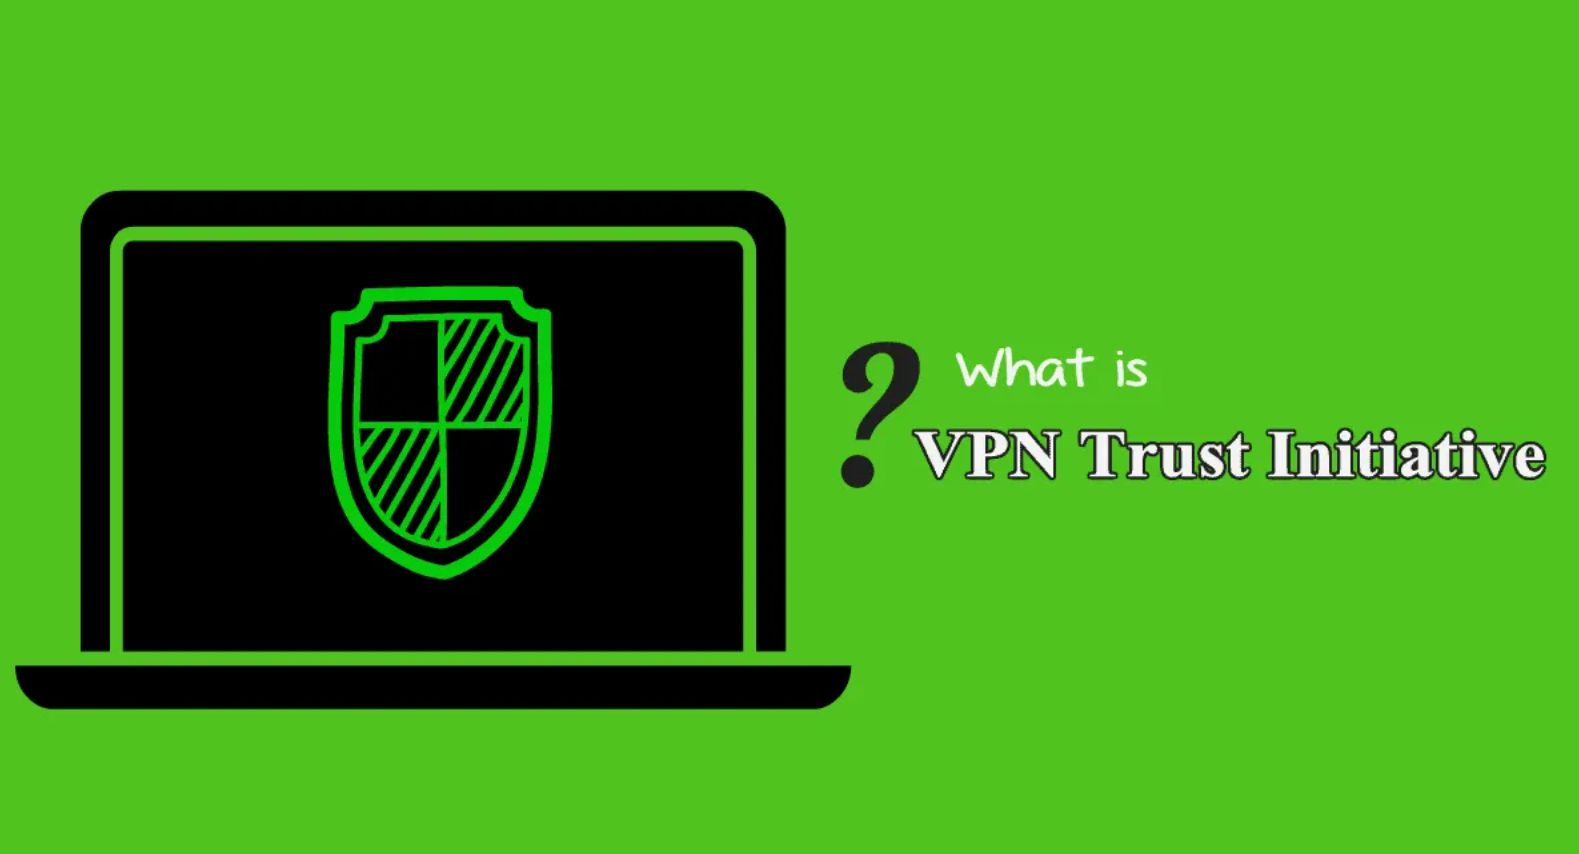 /great-news-about-self-regulation-in-vpn-industry-i2coalitions-vti-essentials-hzk3t01 feature image